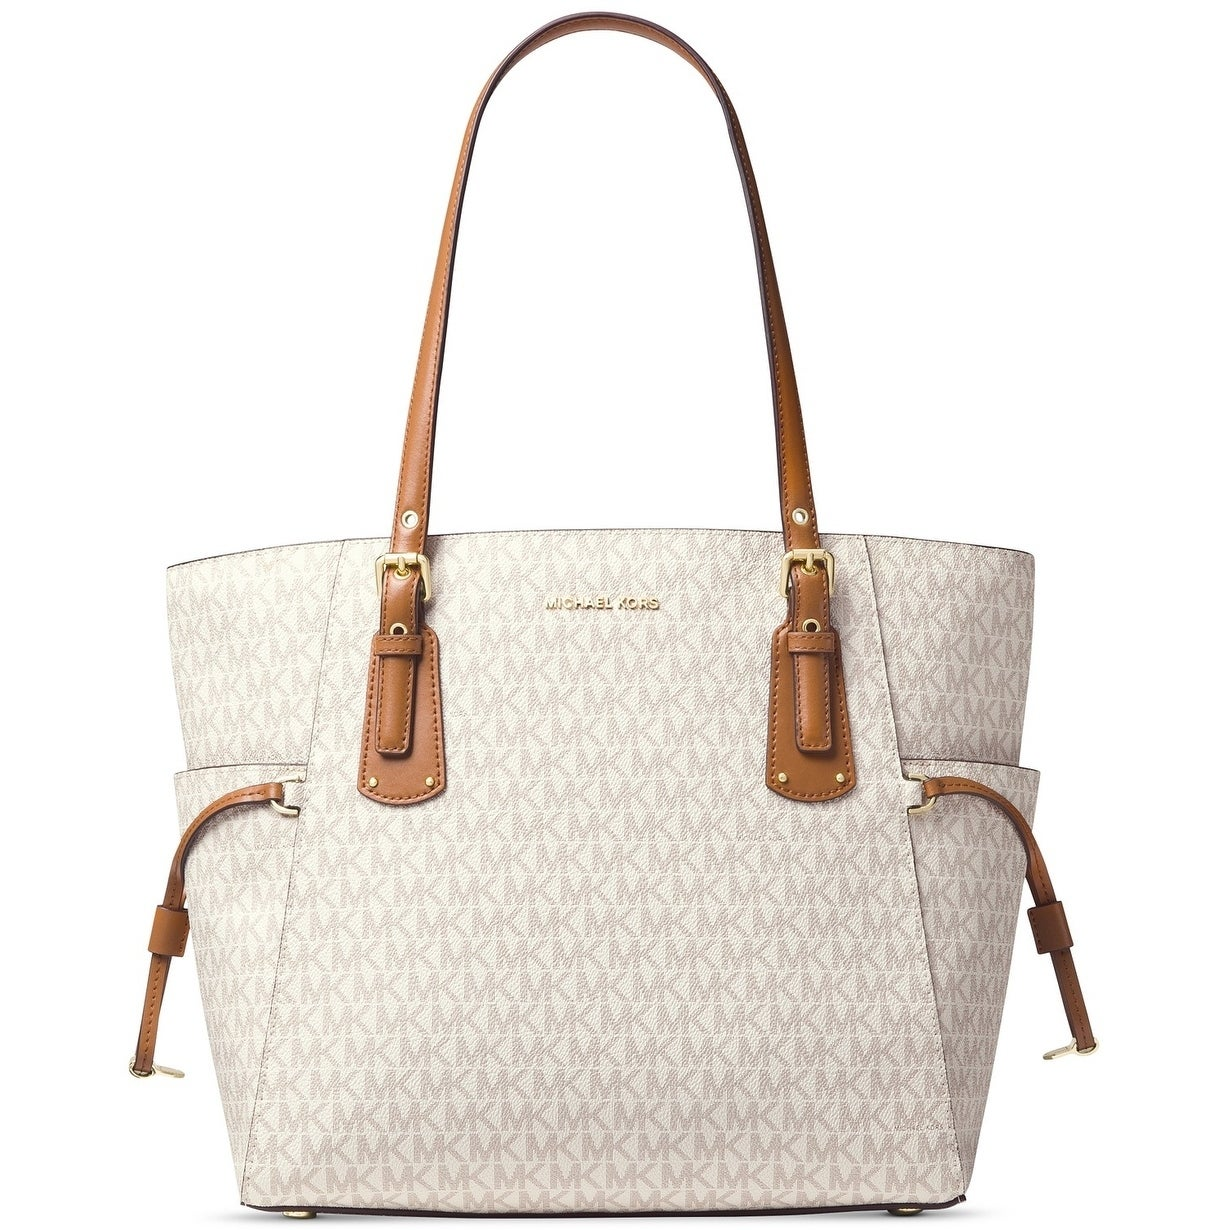 45d8863aa634 Shop MICHAEL Michael Kors Voyager East West Signature Tote Vanilla - Free  Shipping Today - Overstock - 23465873